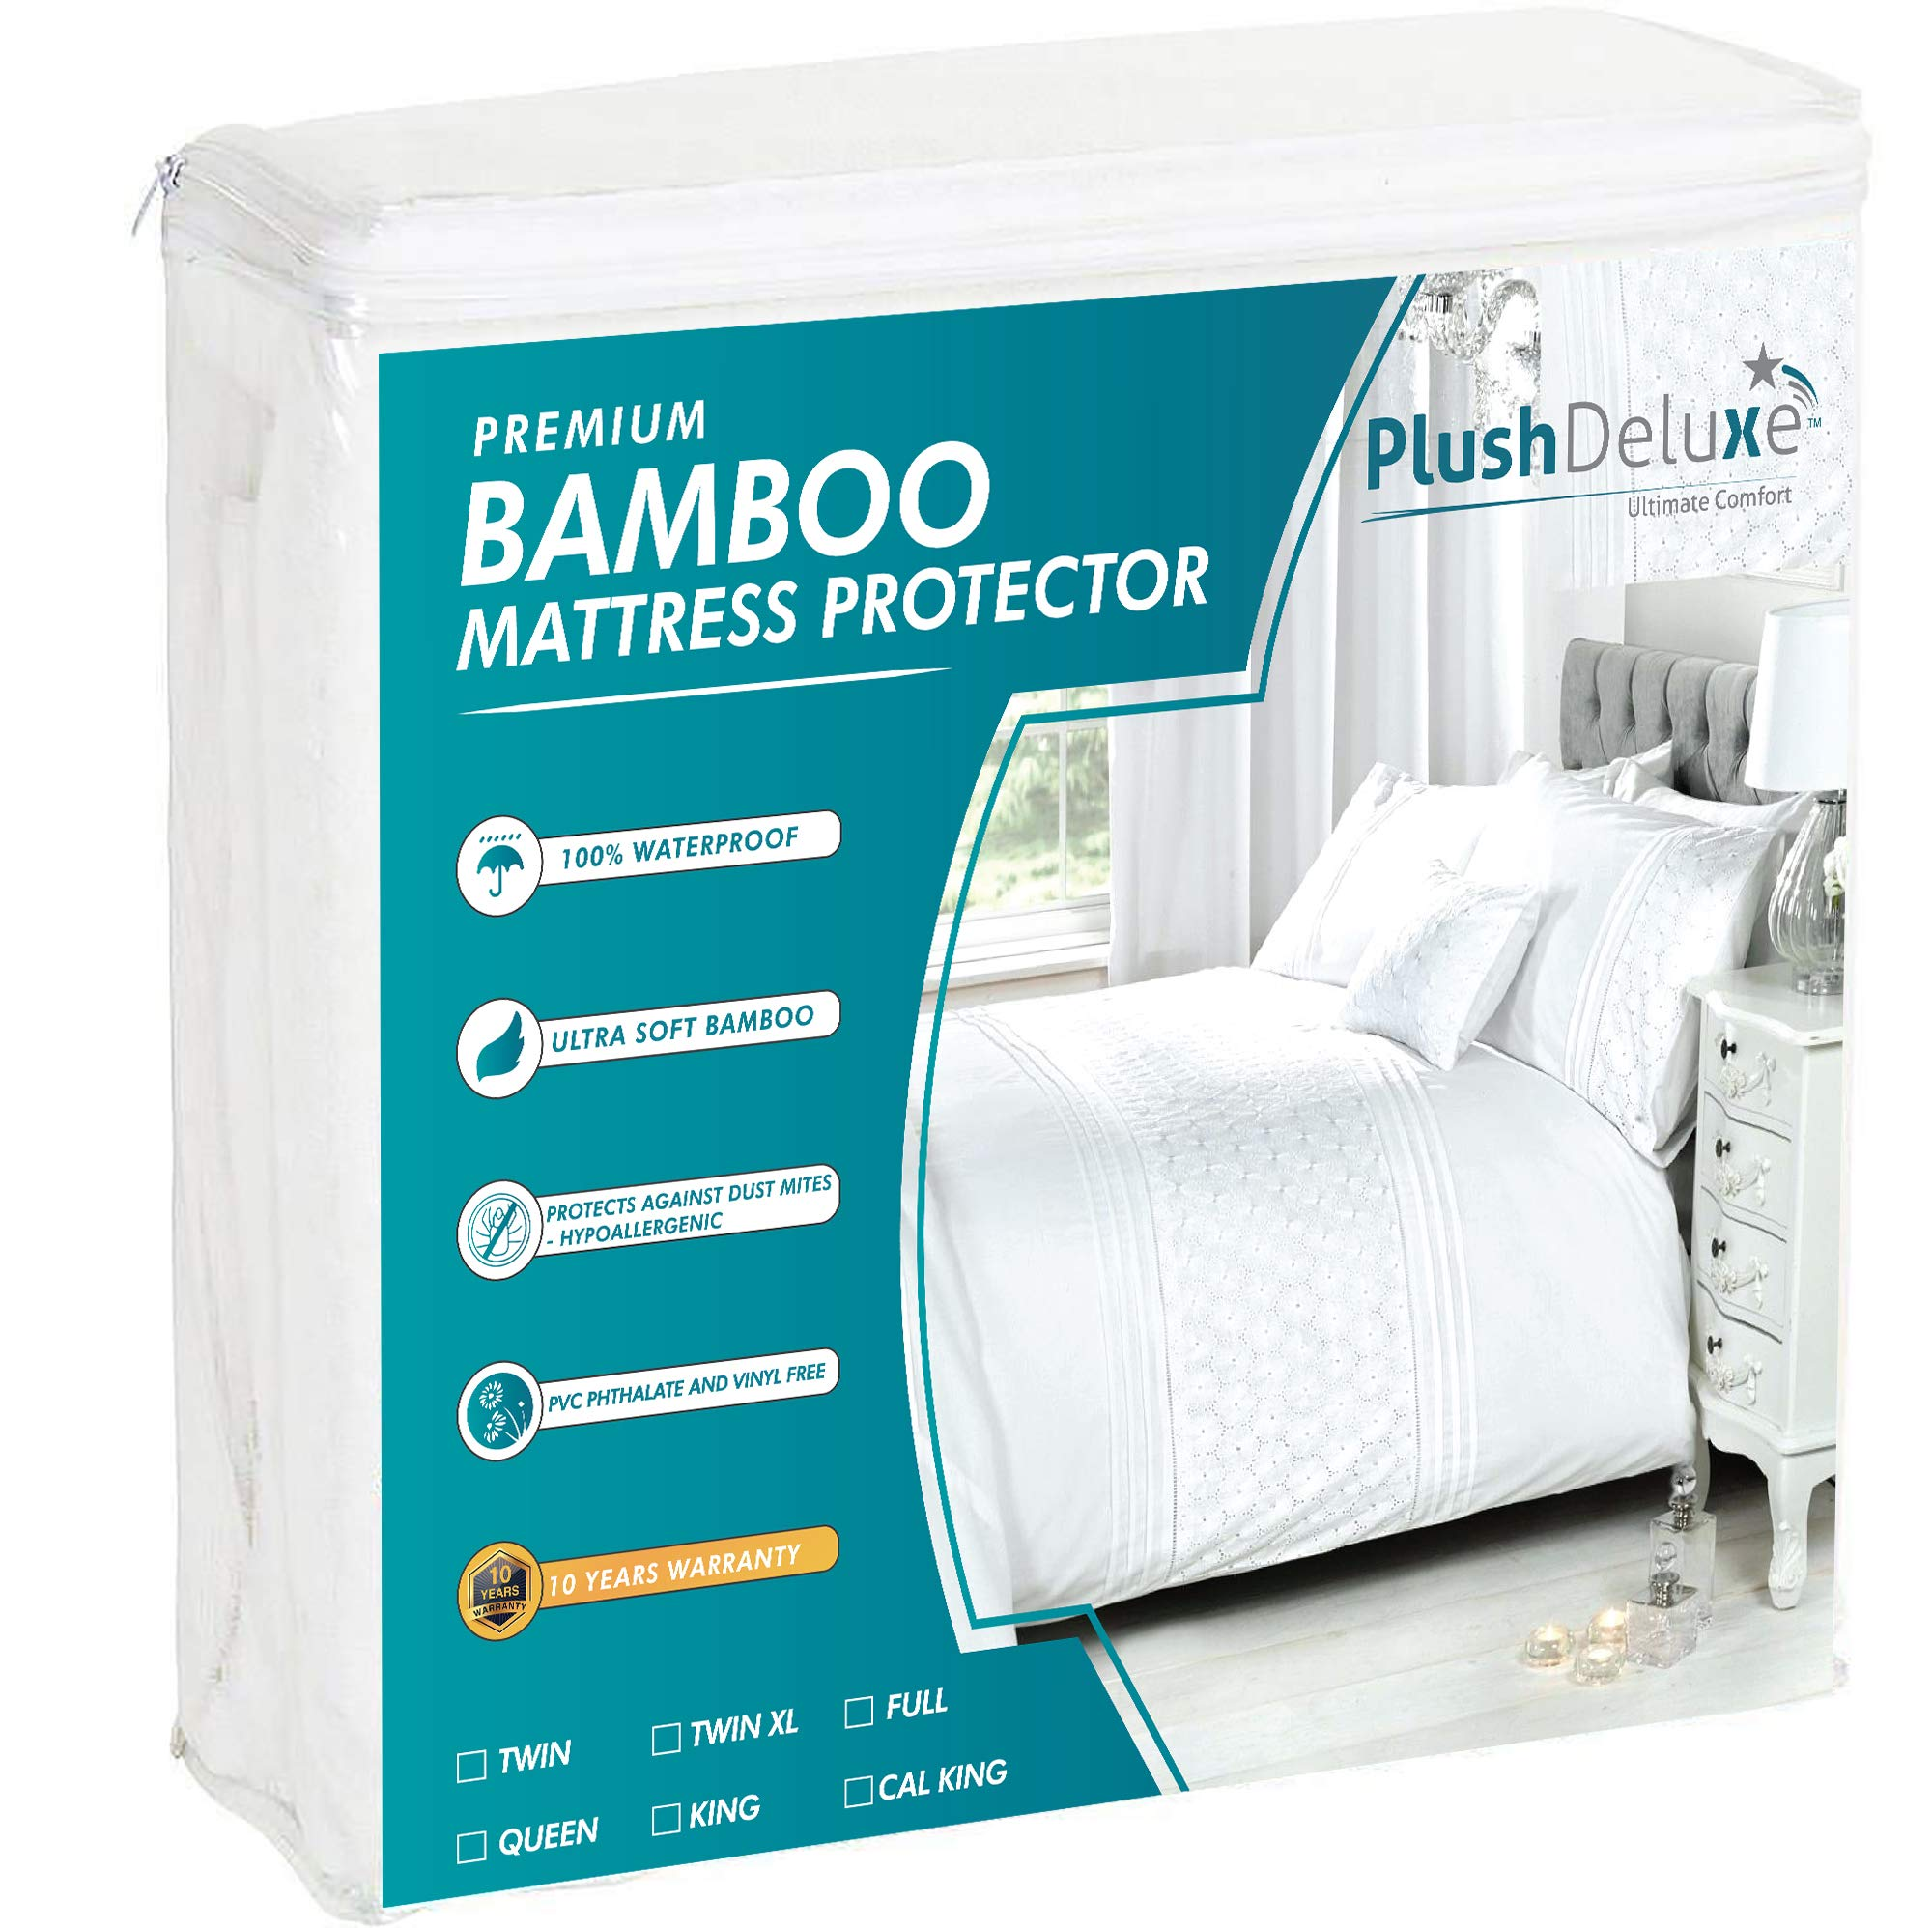 PlushDeluxe Premium Bamboo Mattress Protector - Waterproof, Hypoallergenic & Breathable Bed Mattress Cover for Maximum Comfort & Protection - PVC, Phthalate & Vinyl-Free (Queen Size)